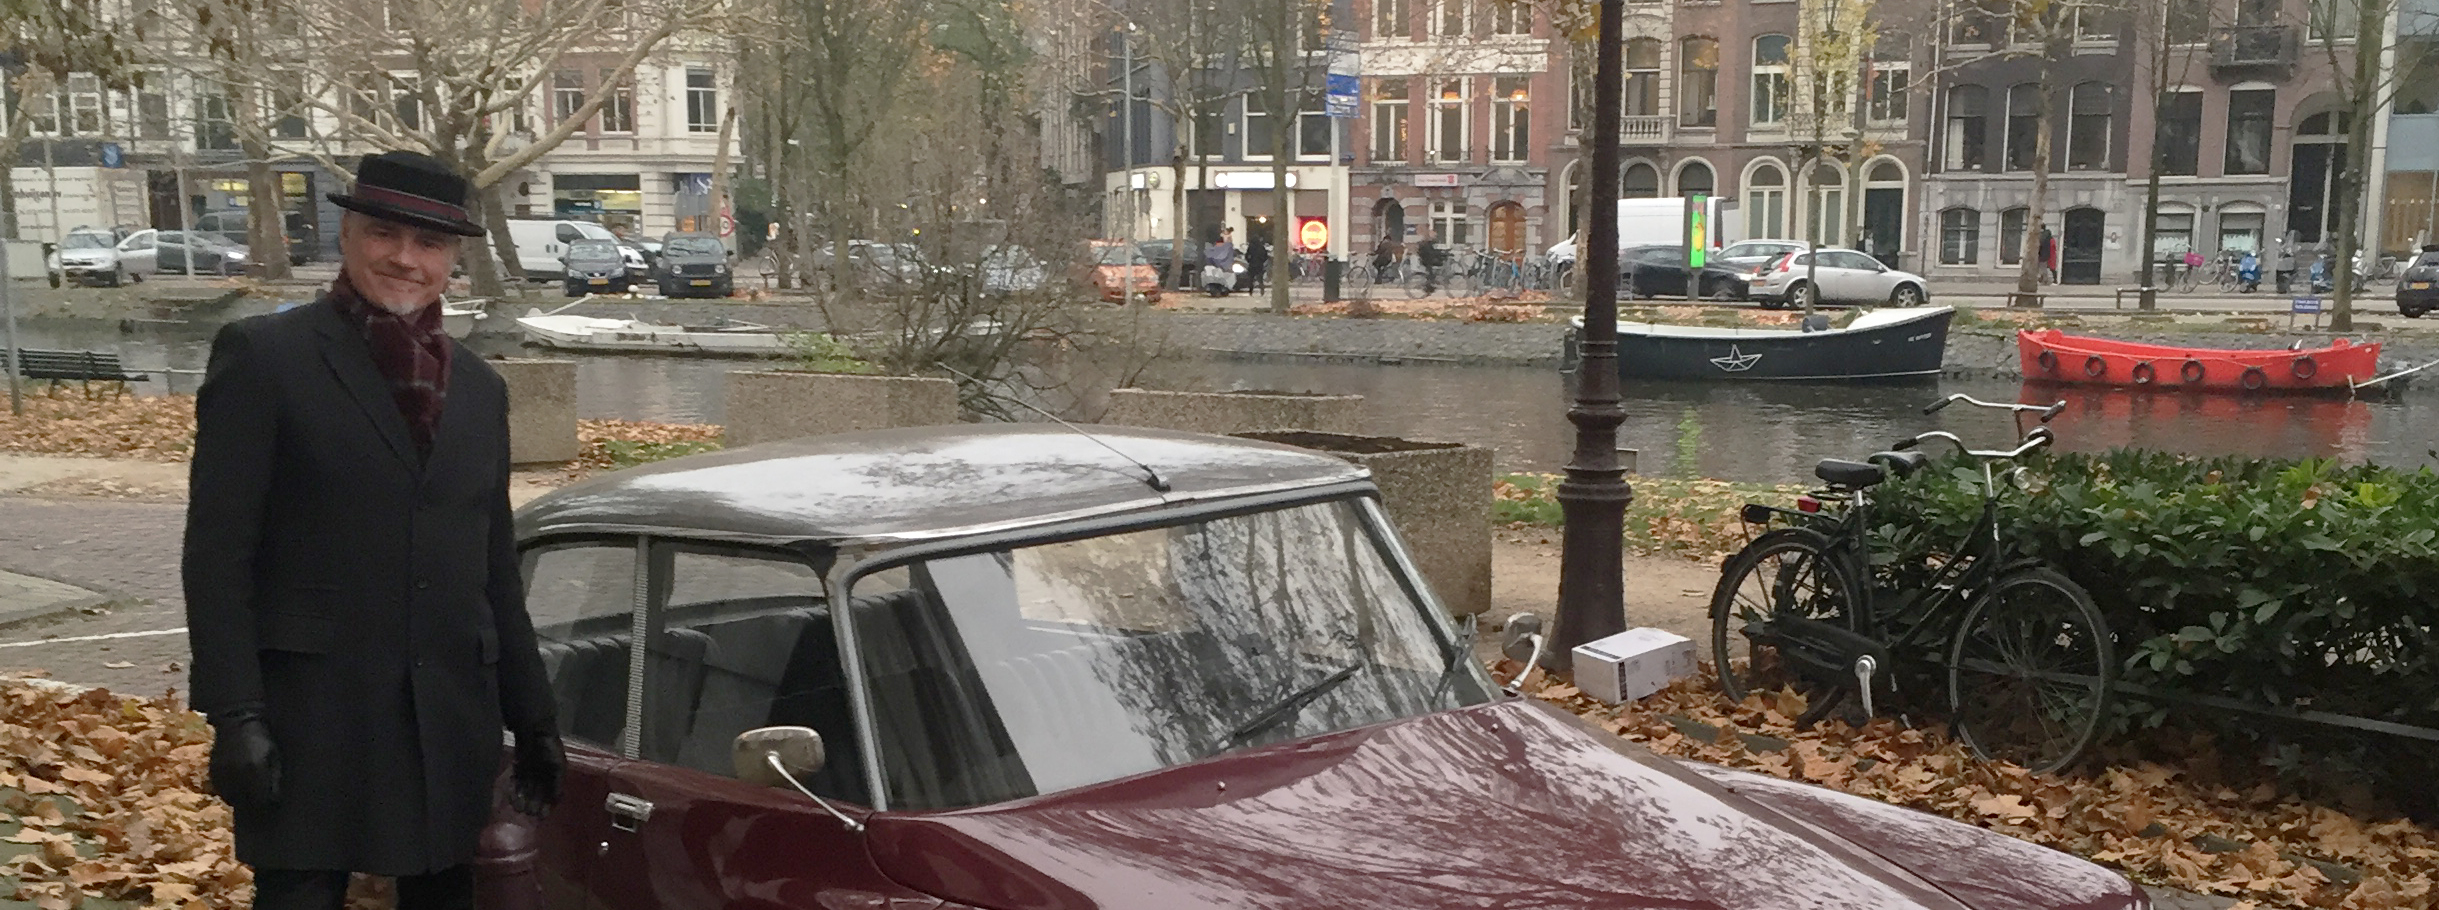 Rompa took me for a drive in Amsterdam